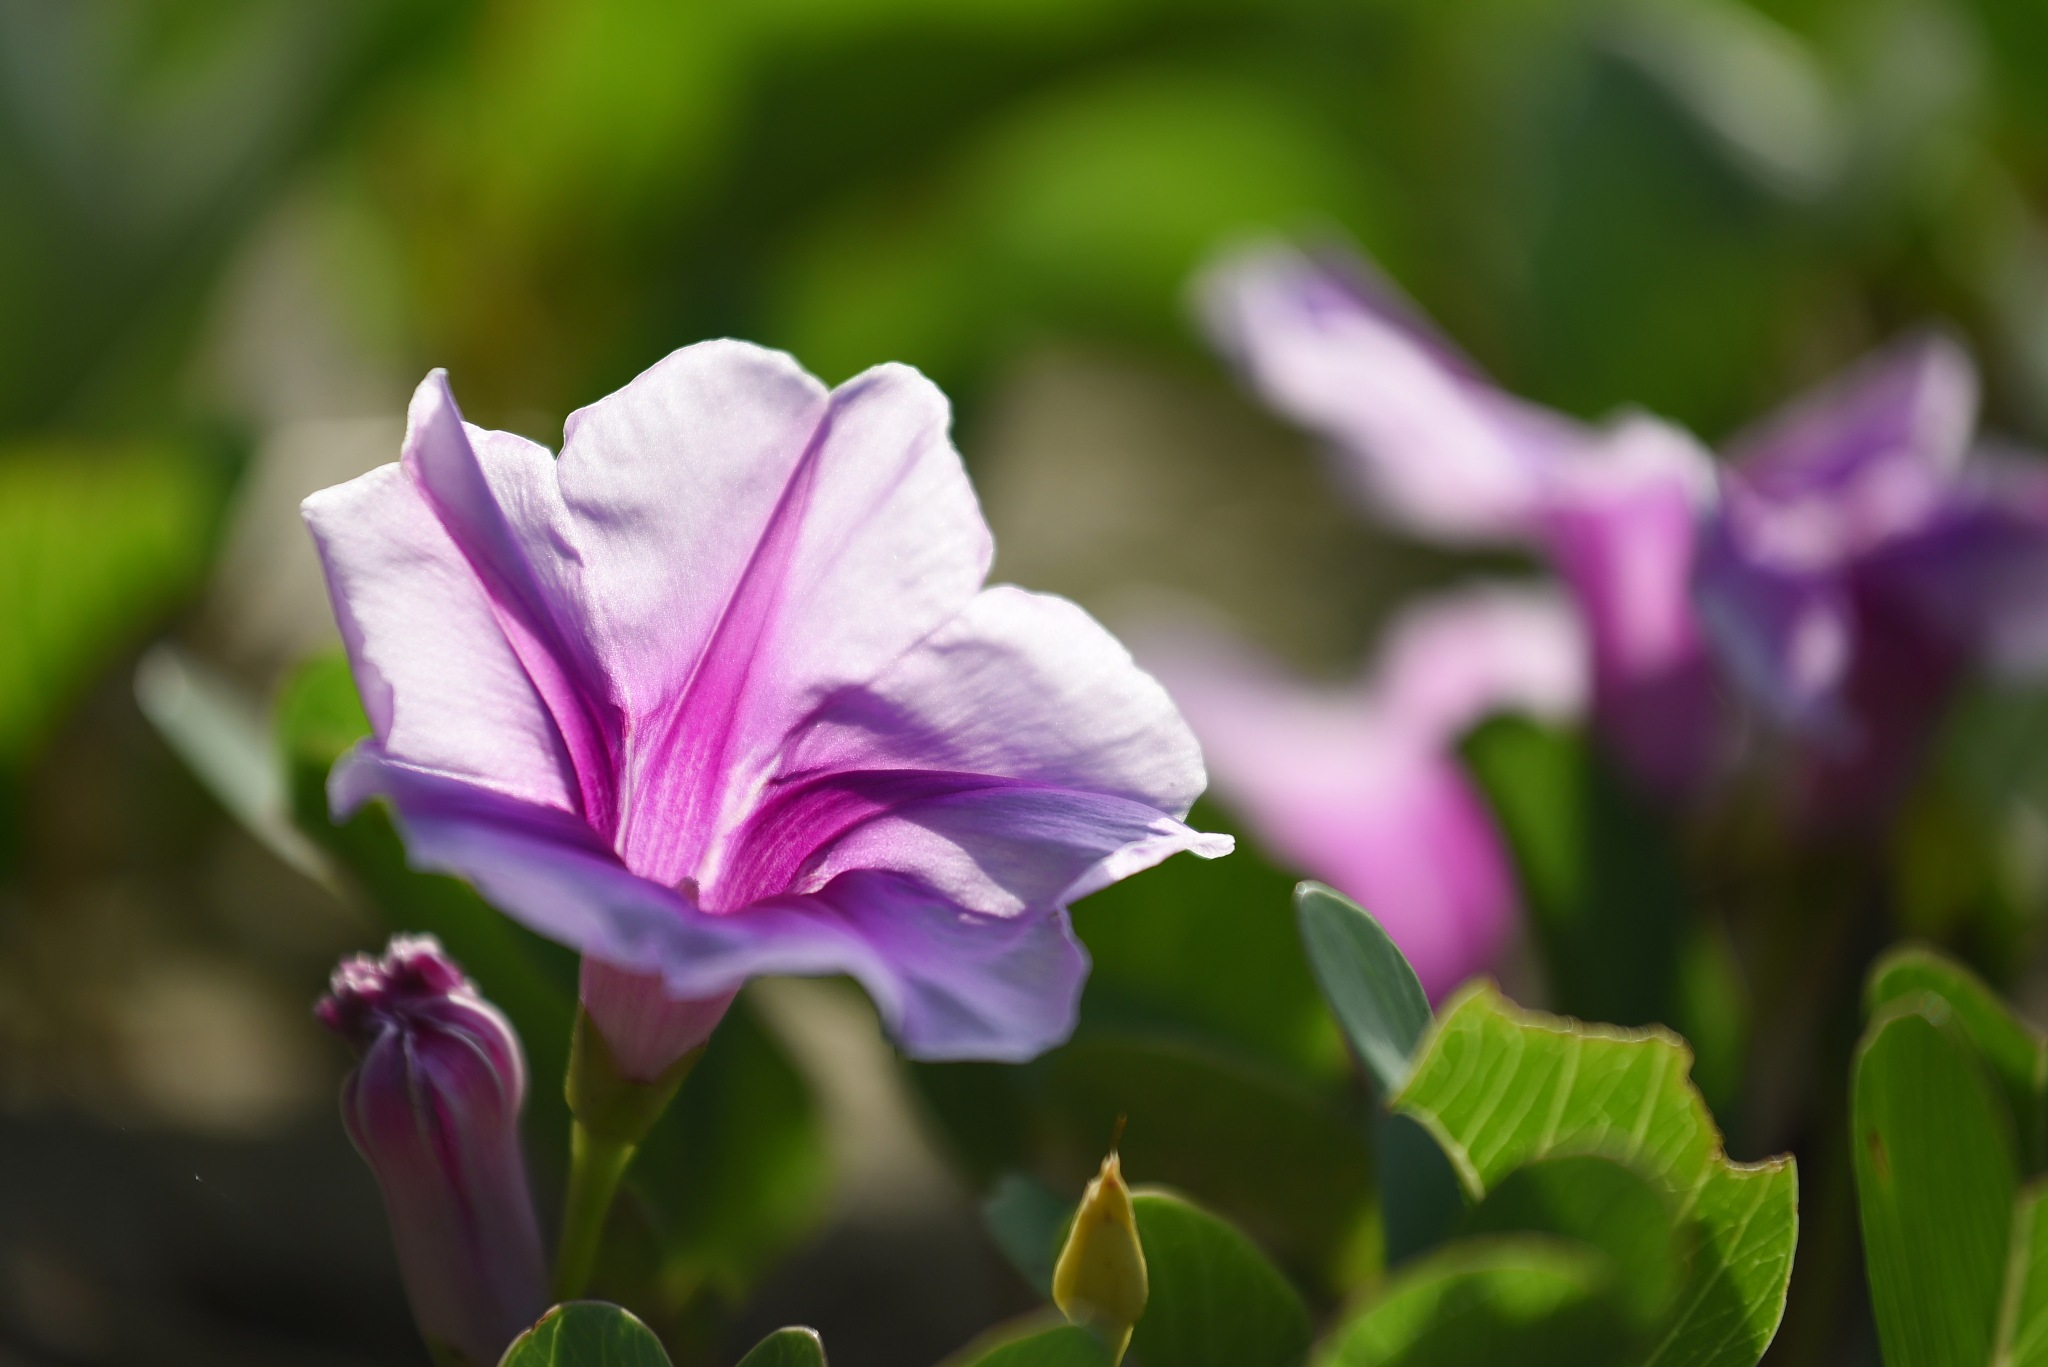 beach morning glory by lequangchi